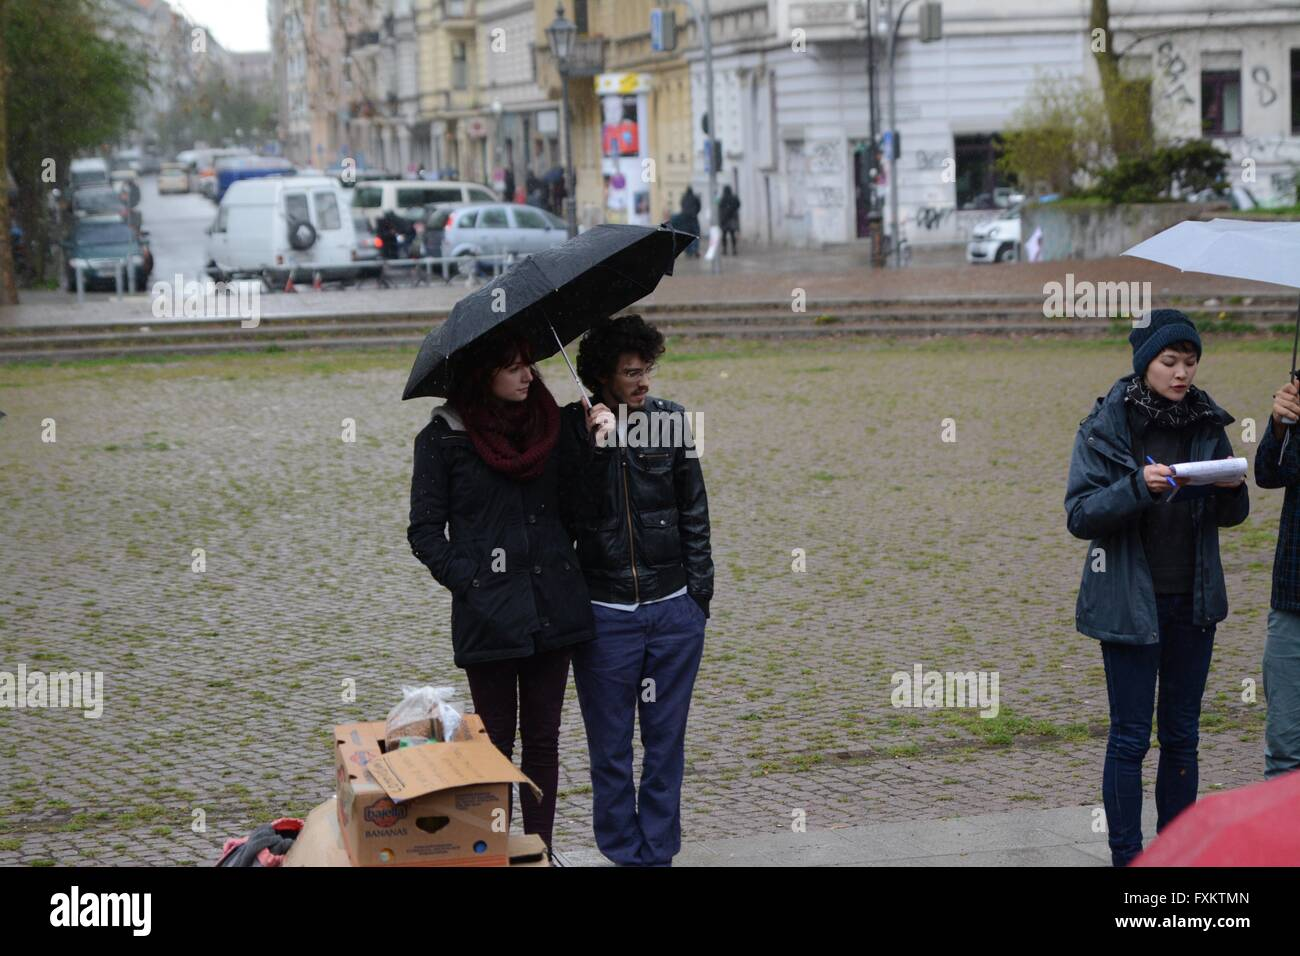 Berlin, Germany. 16th April 2016. Organisers shield themselves from the impending storm as they speak to the gathered - Stock Image